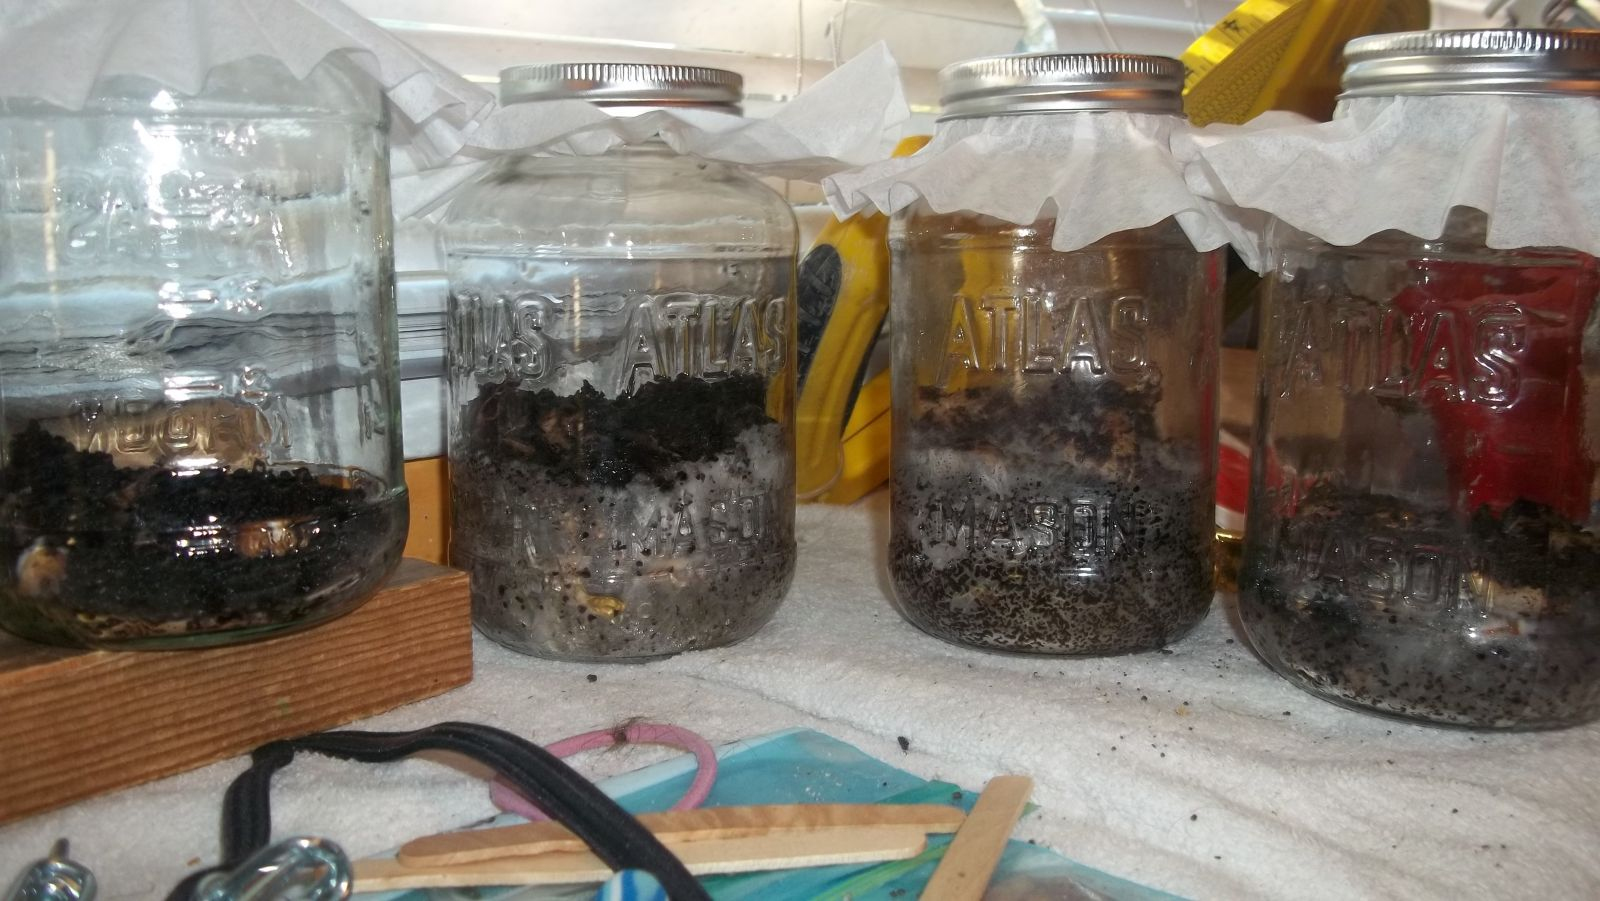 Growing Mushrooms From Coffee Grounds